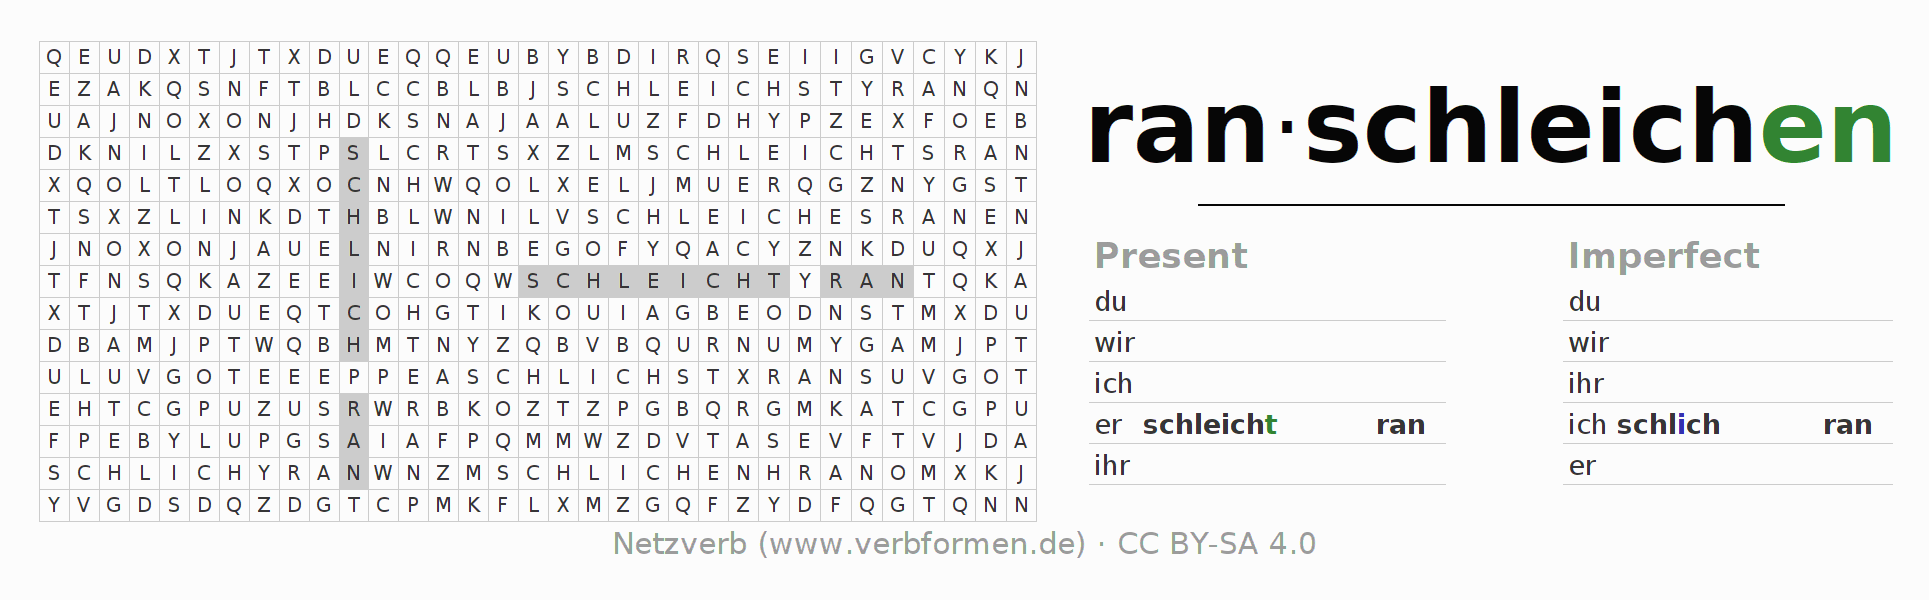 Word search puzzle for the conjugation of the verb ranschleichen (hat)